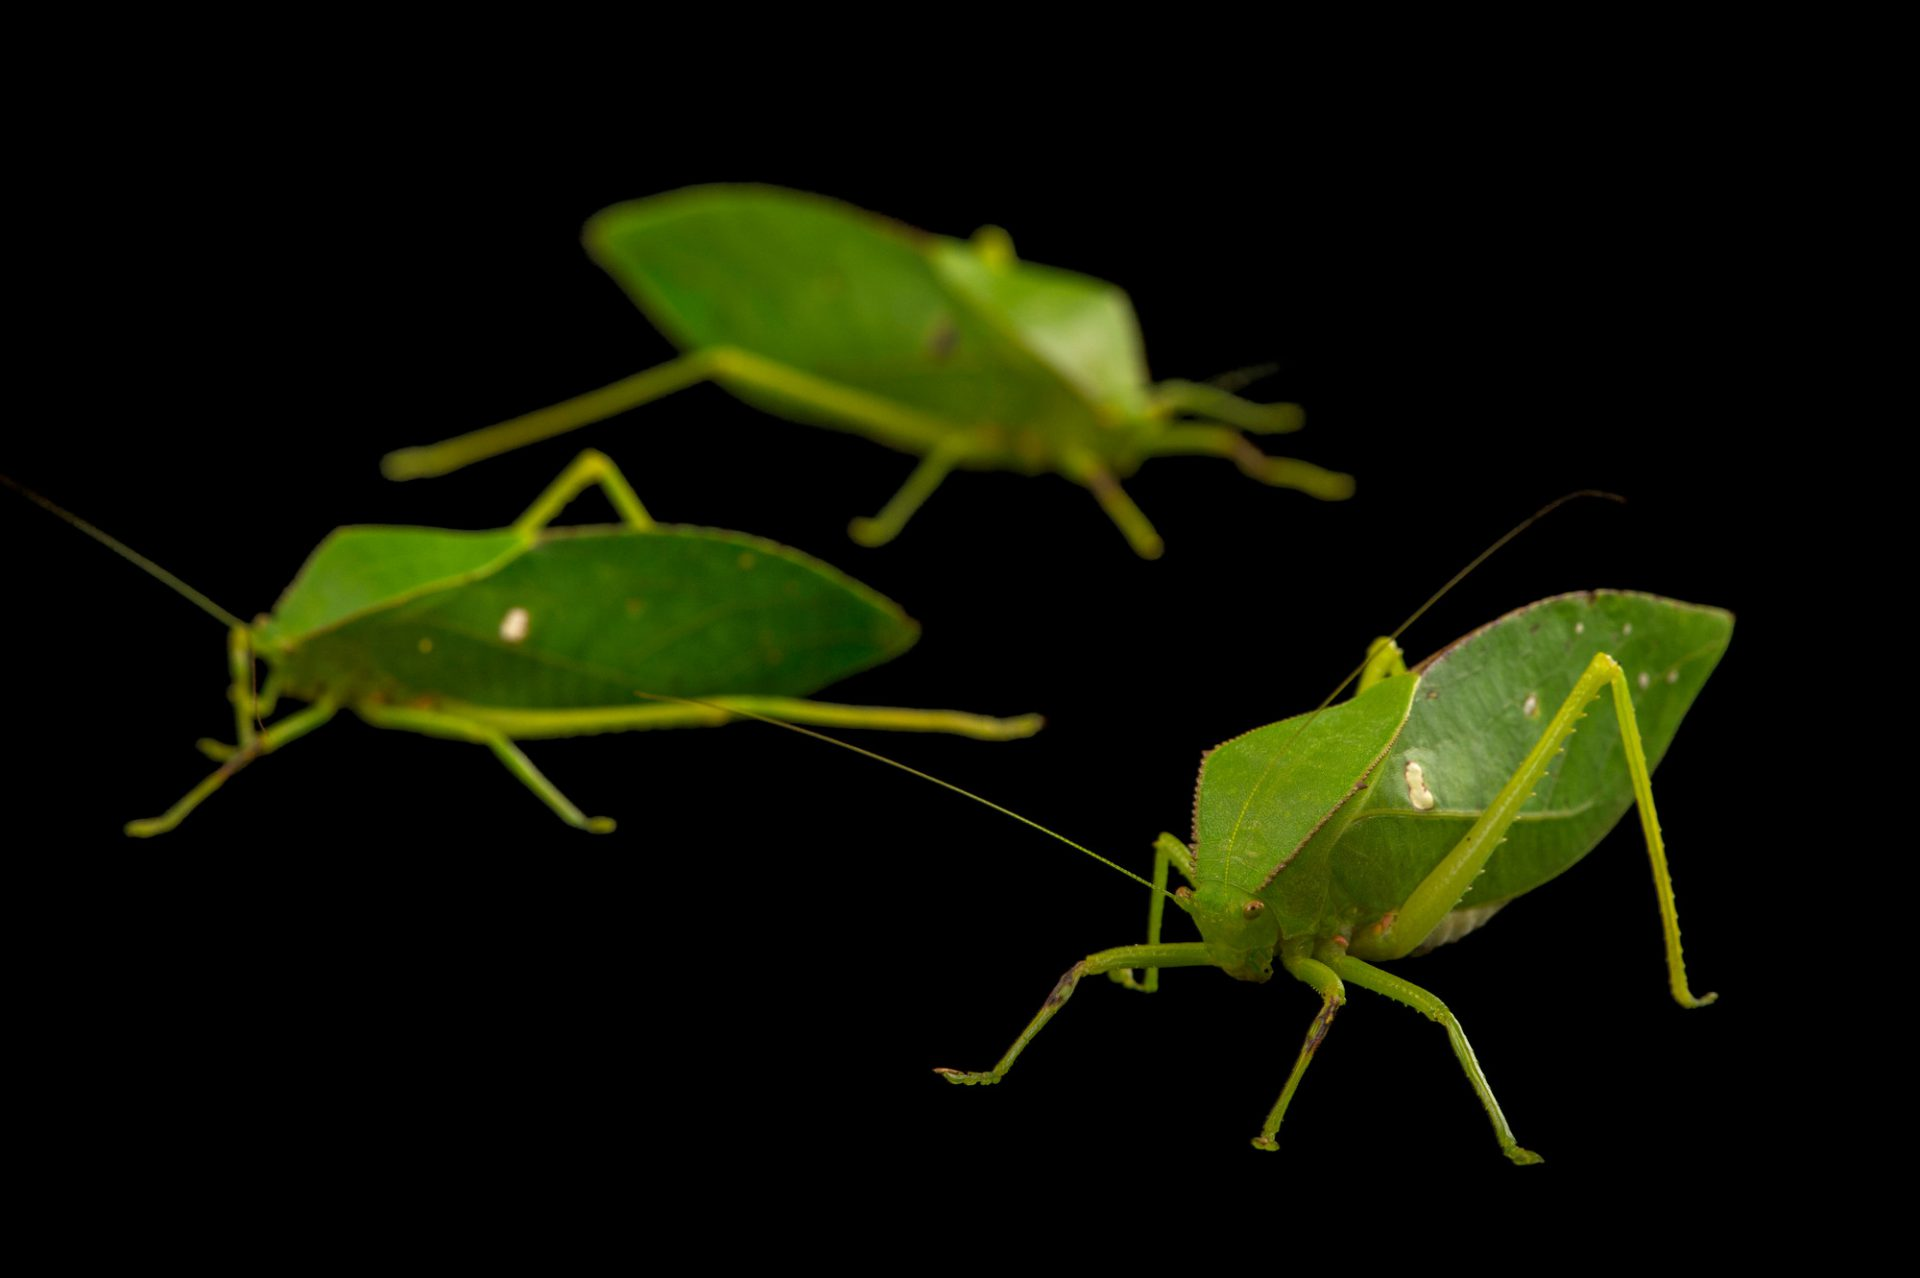 Picture of small hooded katydids (Phyllophorella queenslandica) at the Wild Life Sydney Zoo.